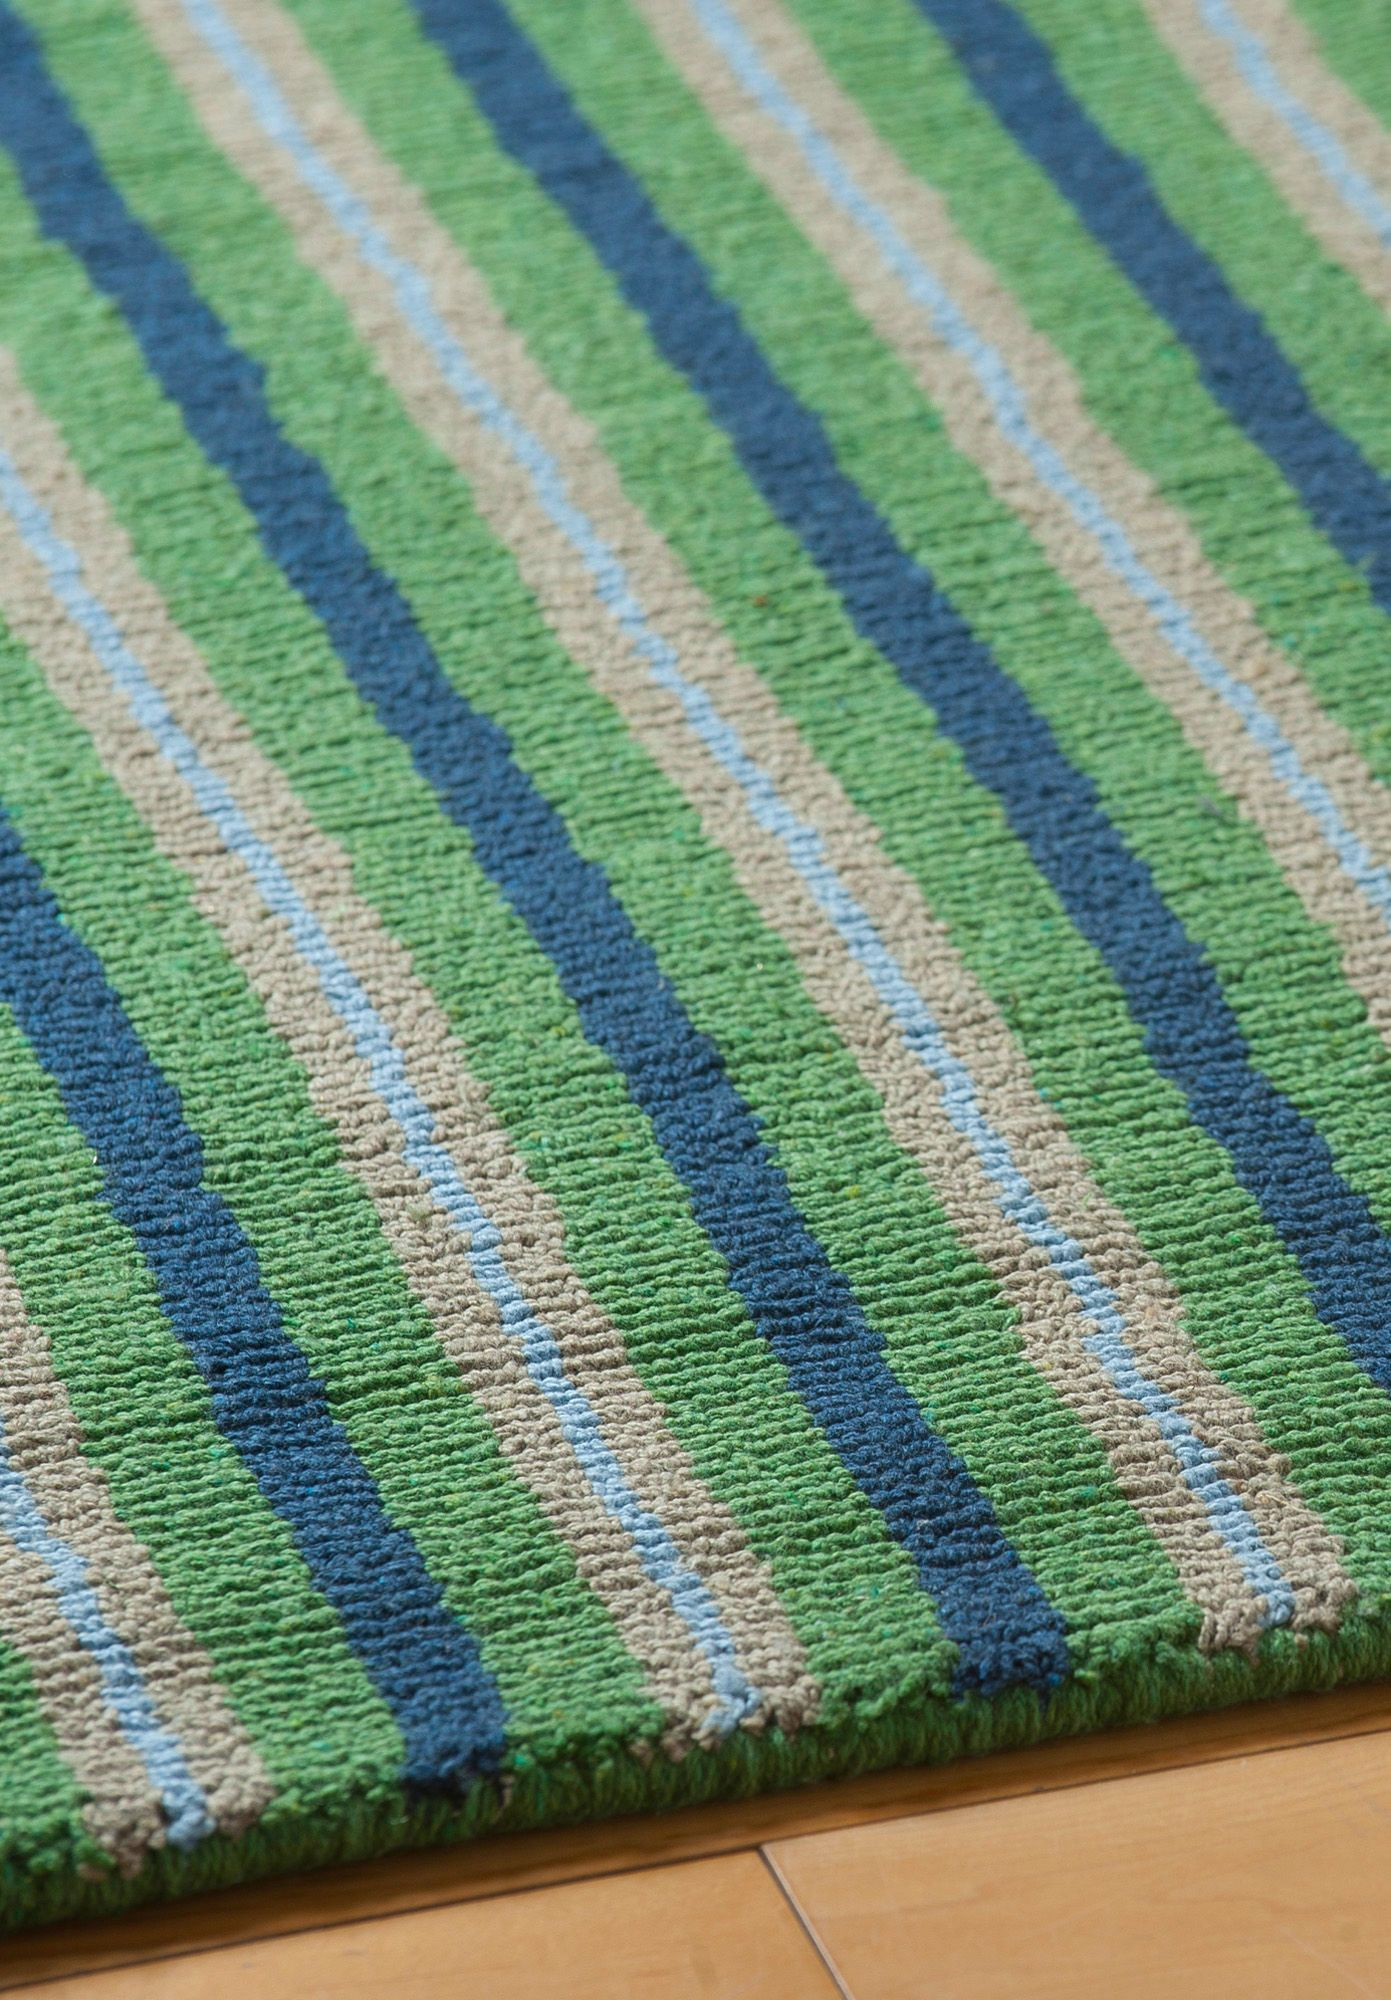 This Bright And Ealing Loom Hooked Rug Will Bring Casual Comfort To Any Room Hand Woven Of Recycled Eco Cotton Using No Latex Chemicals Or Dyes